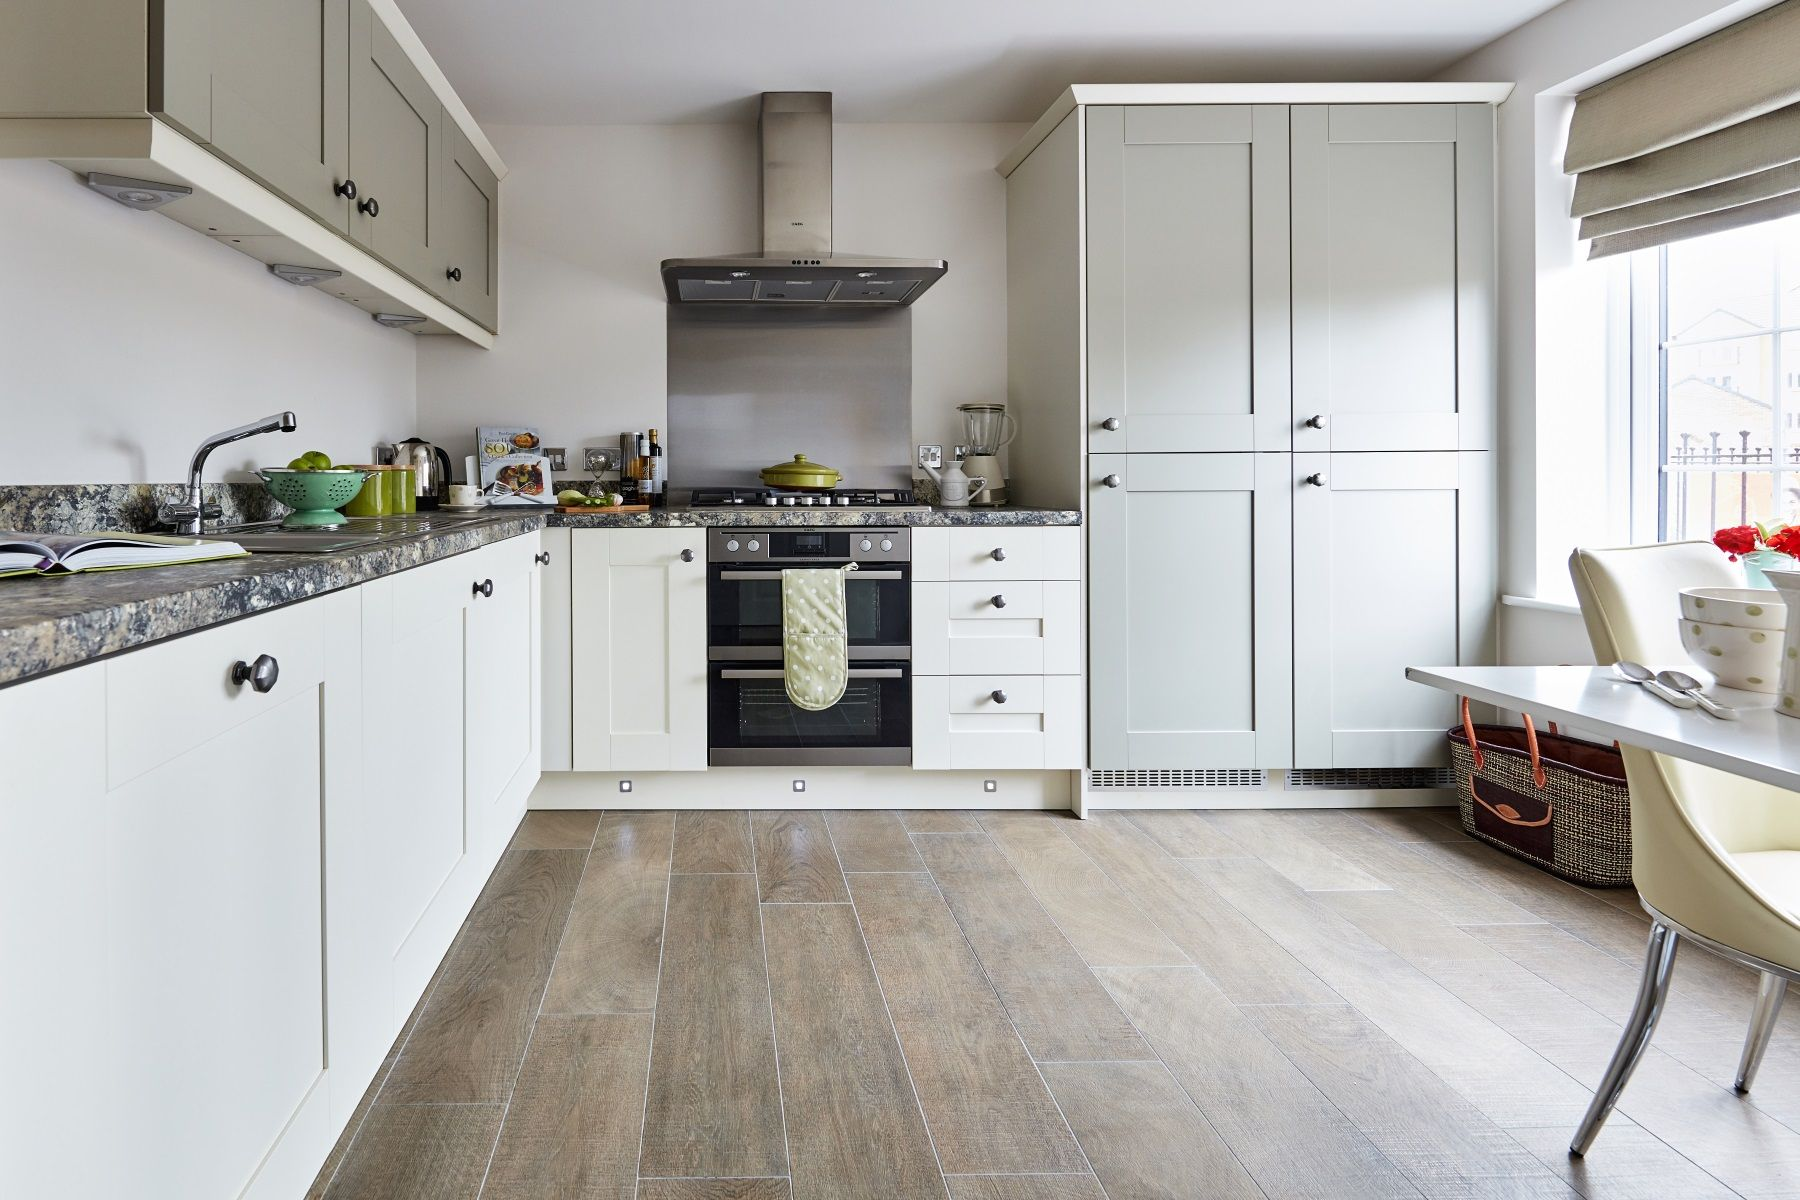 TW Exeter - Cranbrook - Charlbury example kitchen